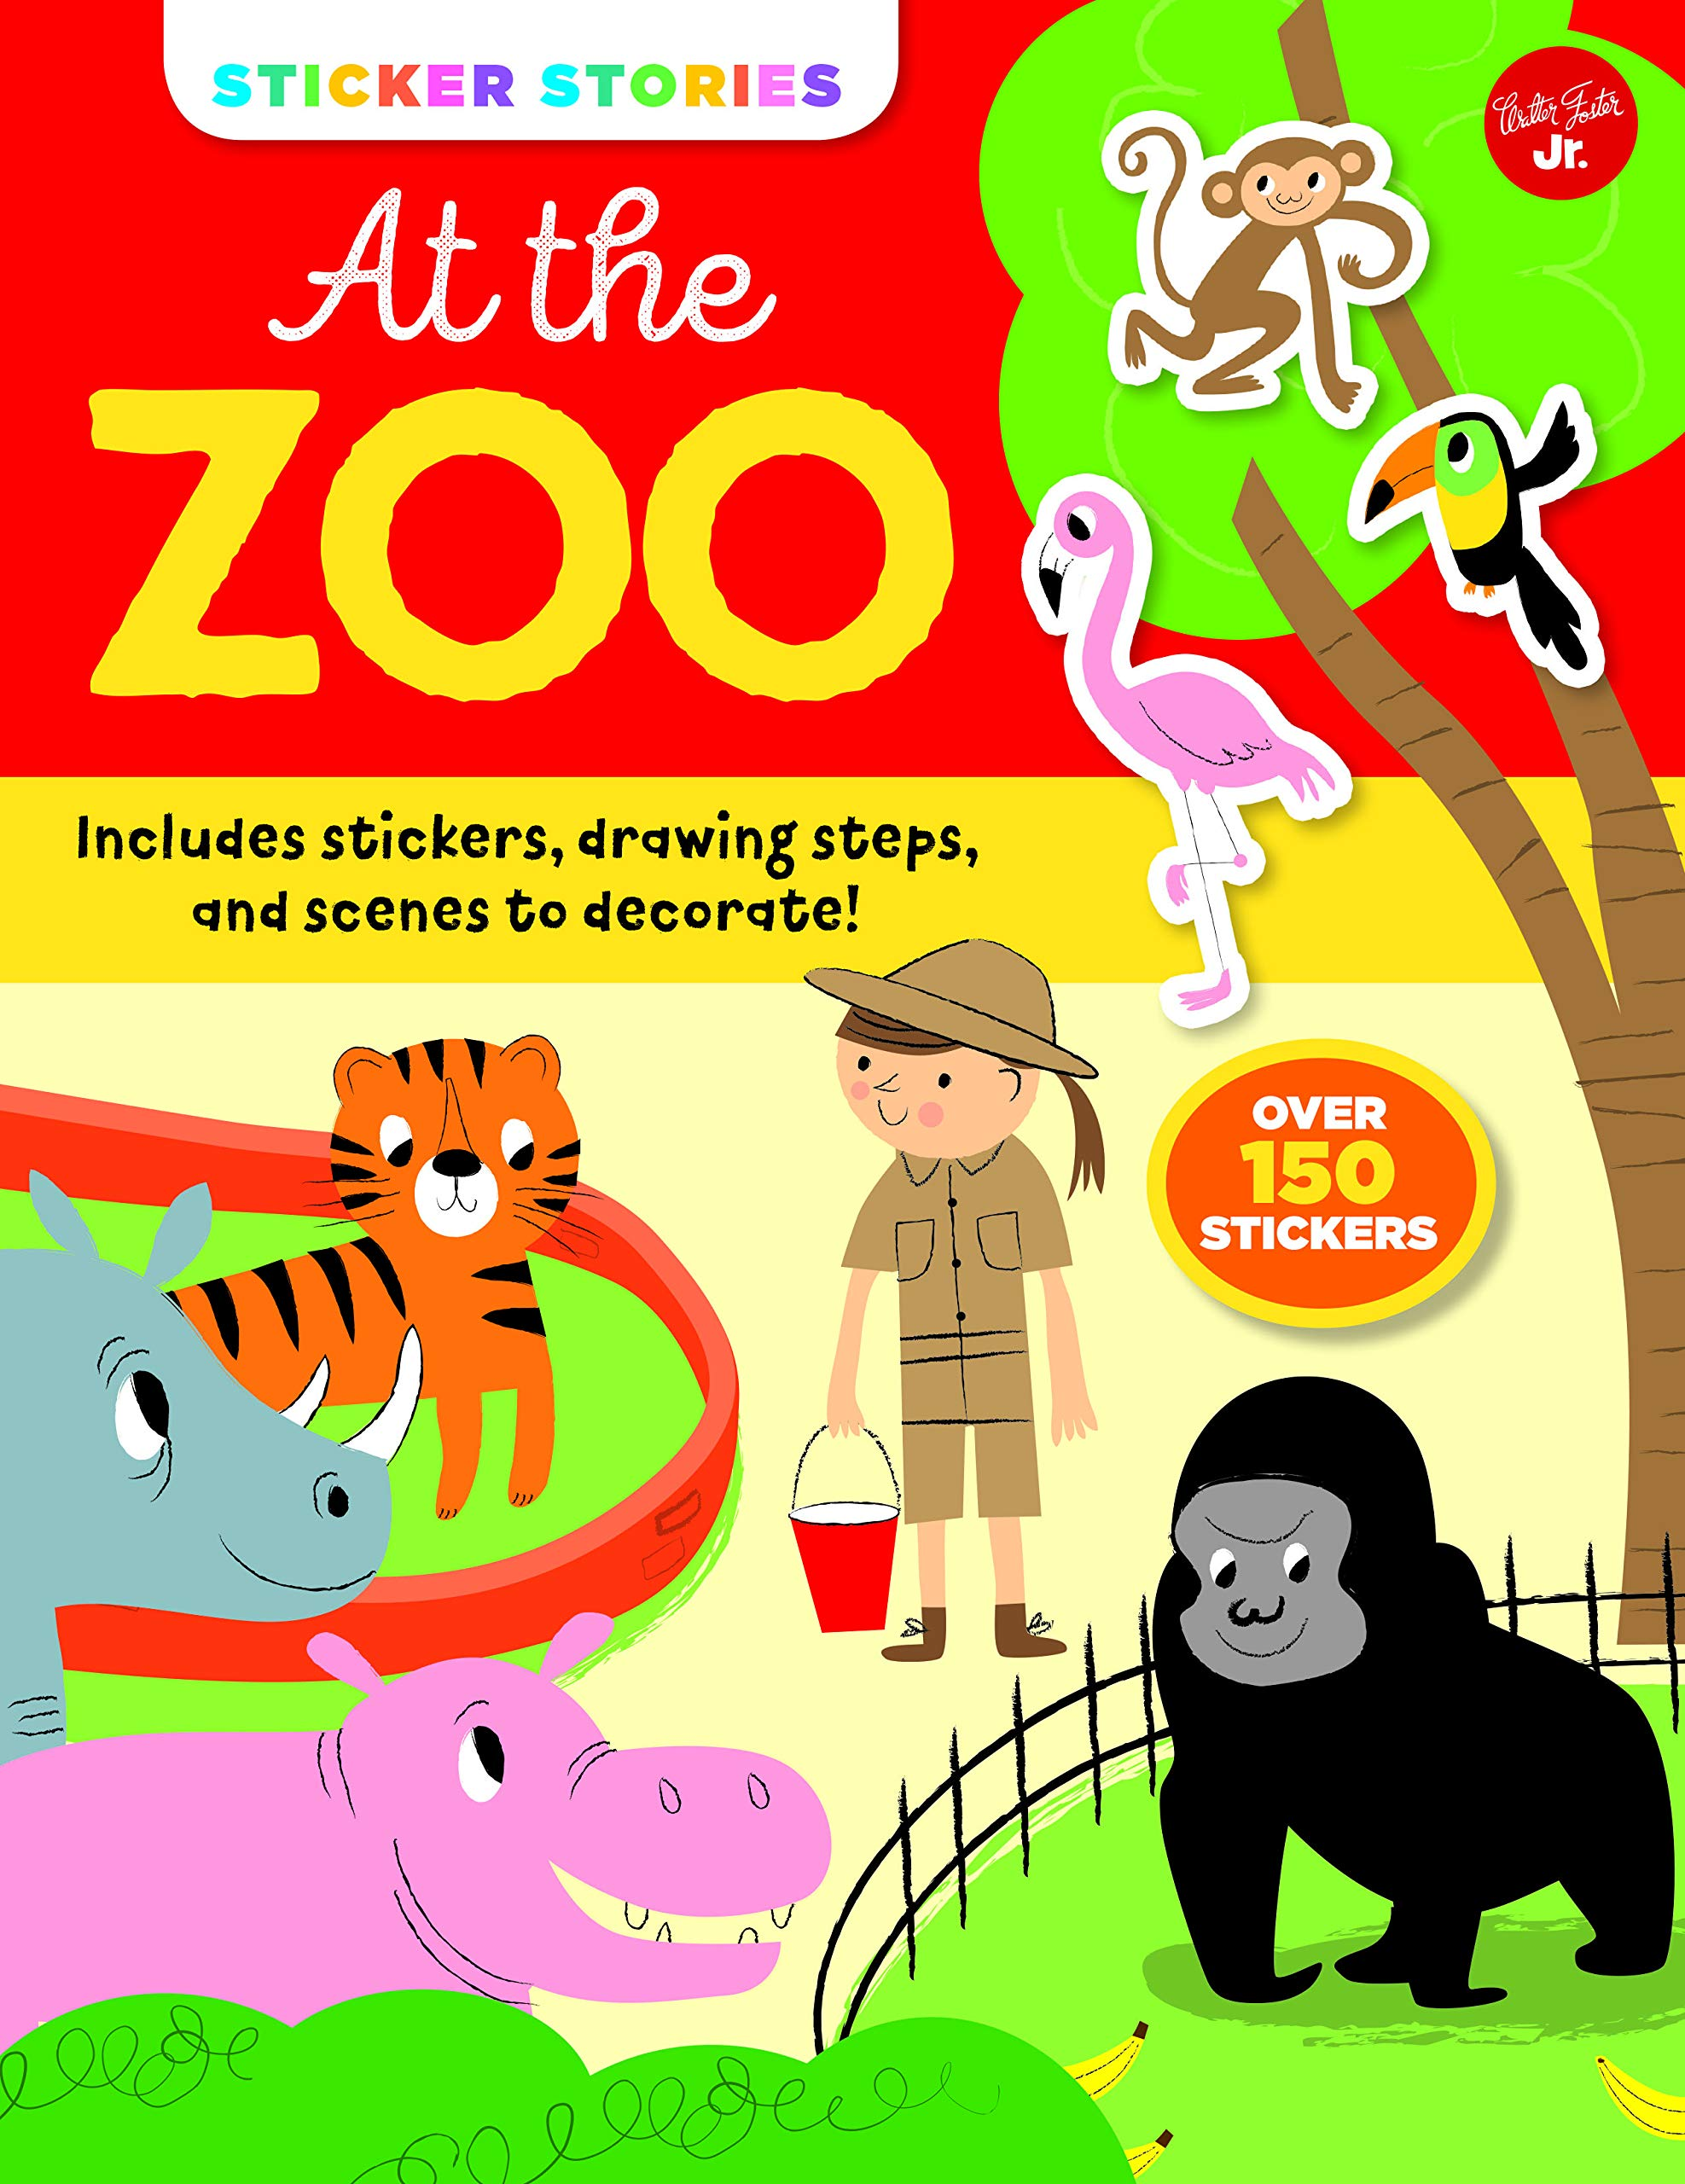 Buy Sticker Stories At The Zoo Includes Stickers Drawing Steps And Scenes To Decorate Over 150 Stickers Book Online At Low Prices In India Sticker Stories At The Zoo Includes Stickers